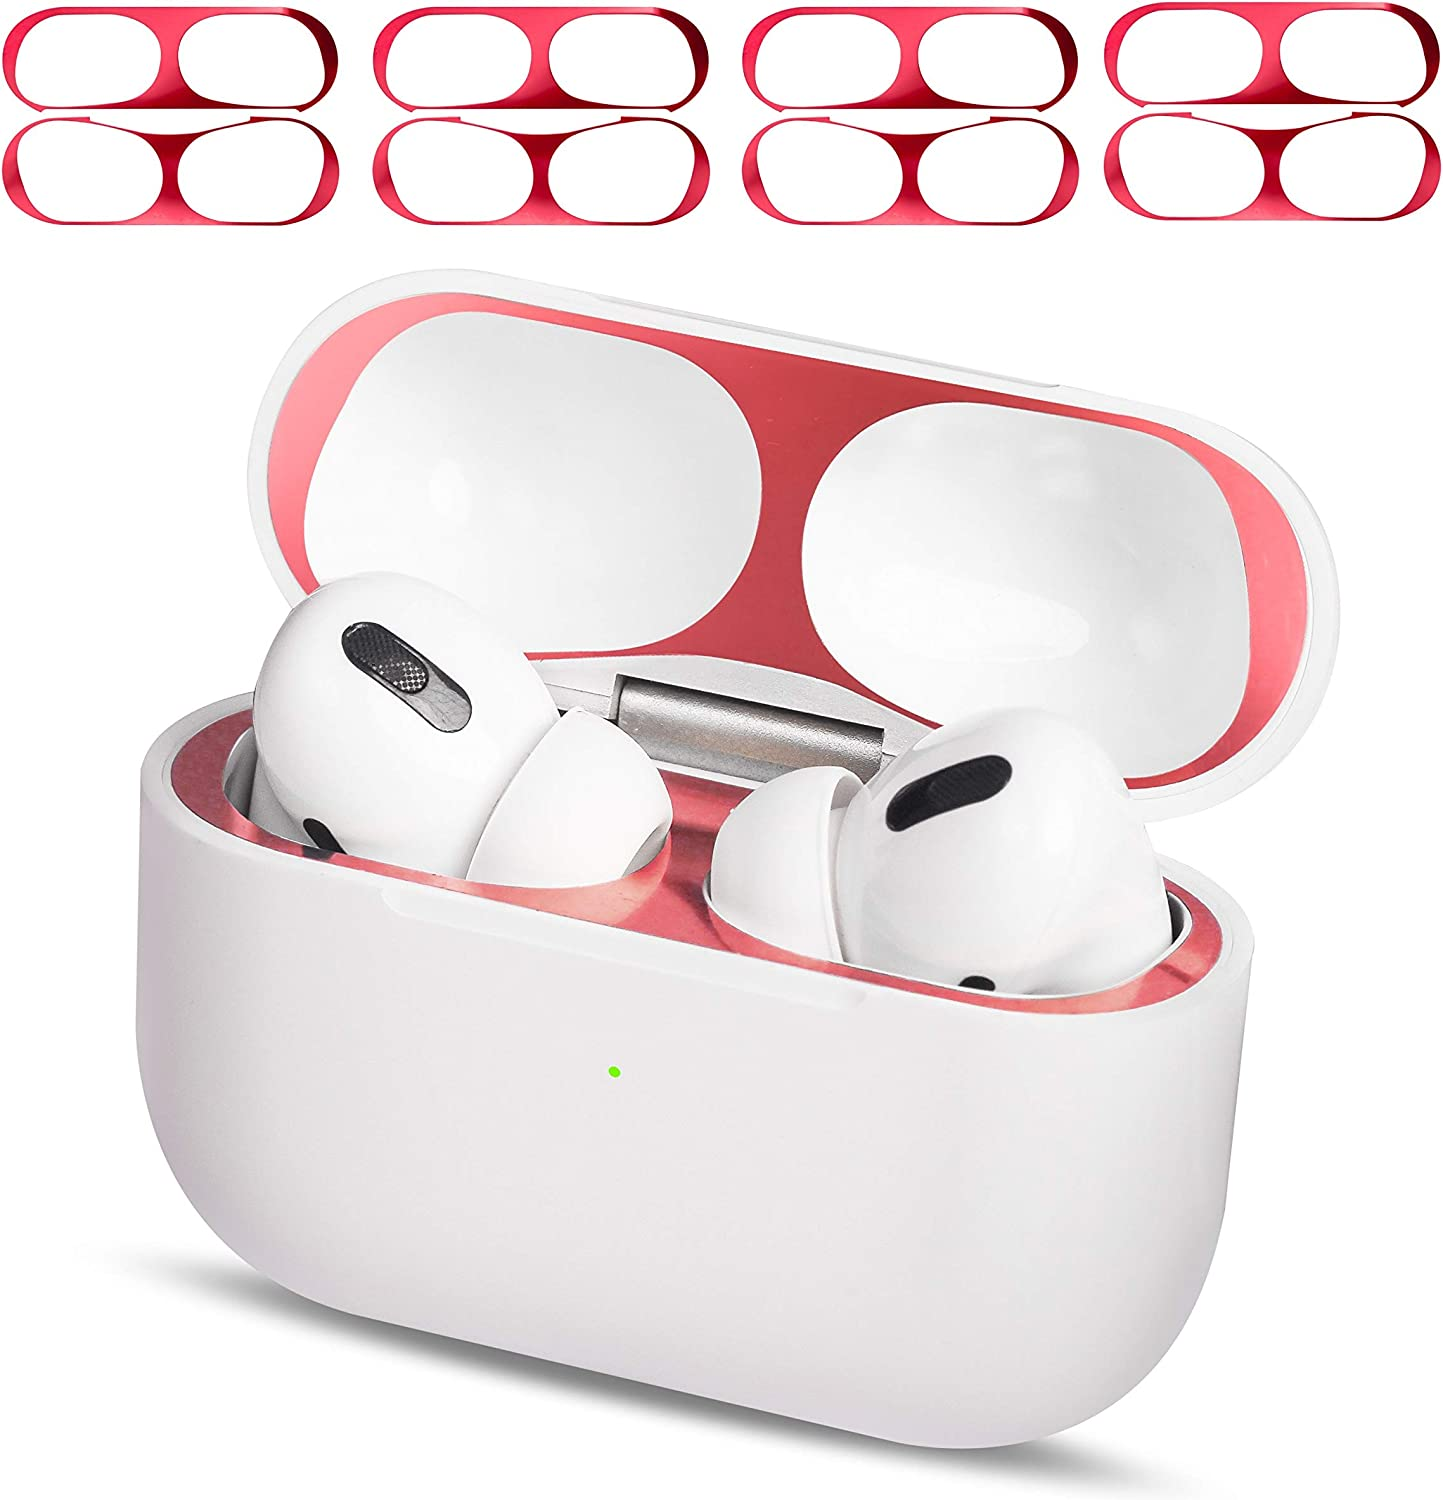 MioHHR AirPods Pro Dust Guard Clear 4 Set, Metal Dust Cover for Apple Airpod Pro Protector Sticker, Airpods 3 Dust Proof Film Accessories for Wireless Wired Charging Case, Ultra Slim Luxurious Red